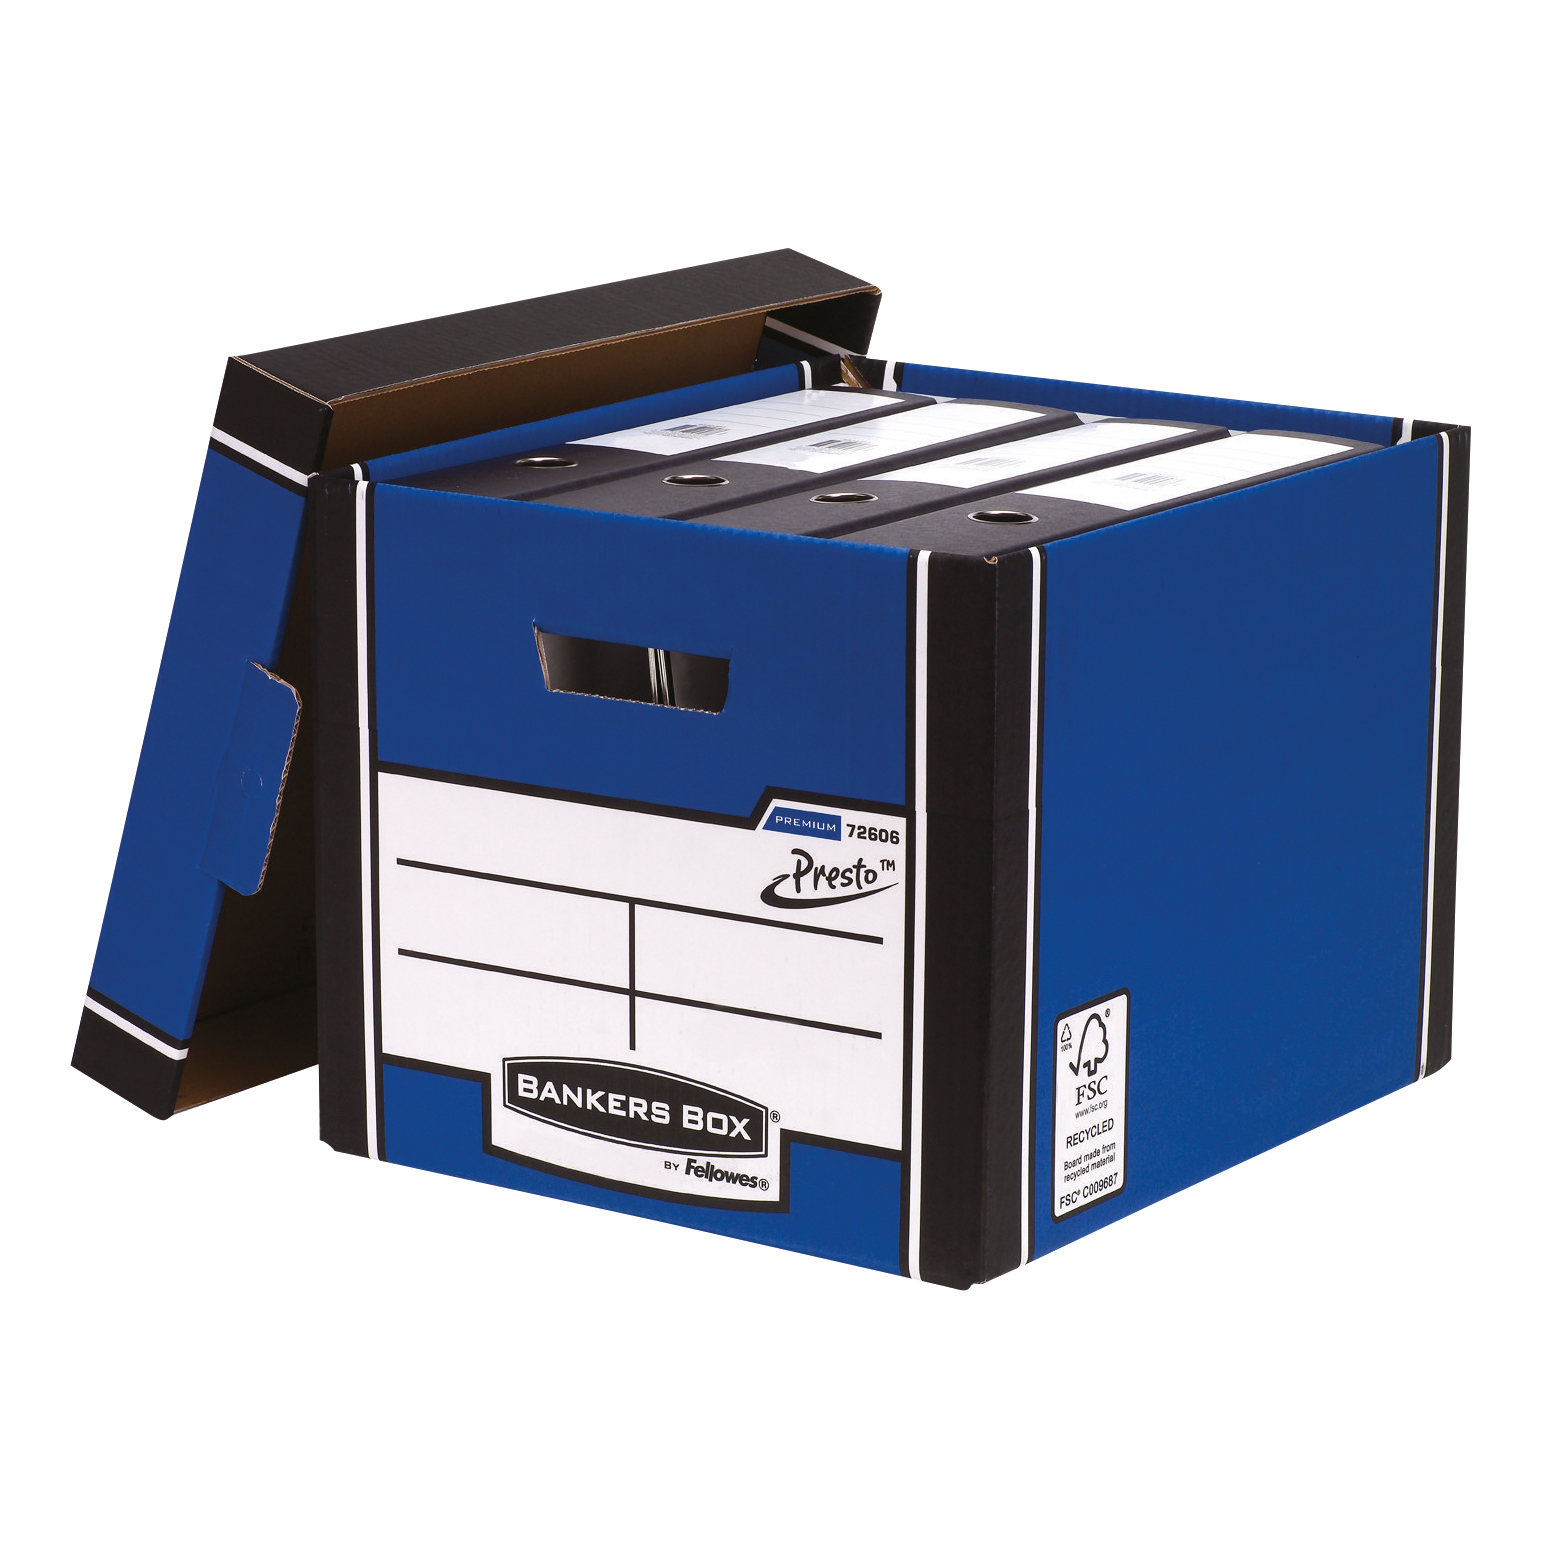 Bankers Box Premium Storage Box (Presto) Tall Blue FSC Ref 7260603 Pack 12 12 for the price of 10